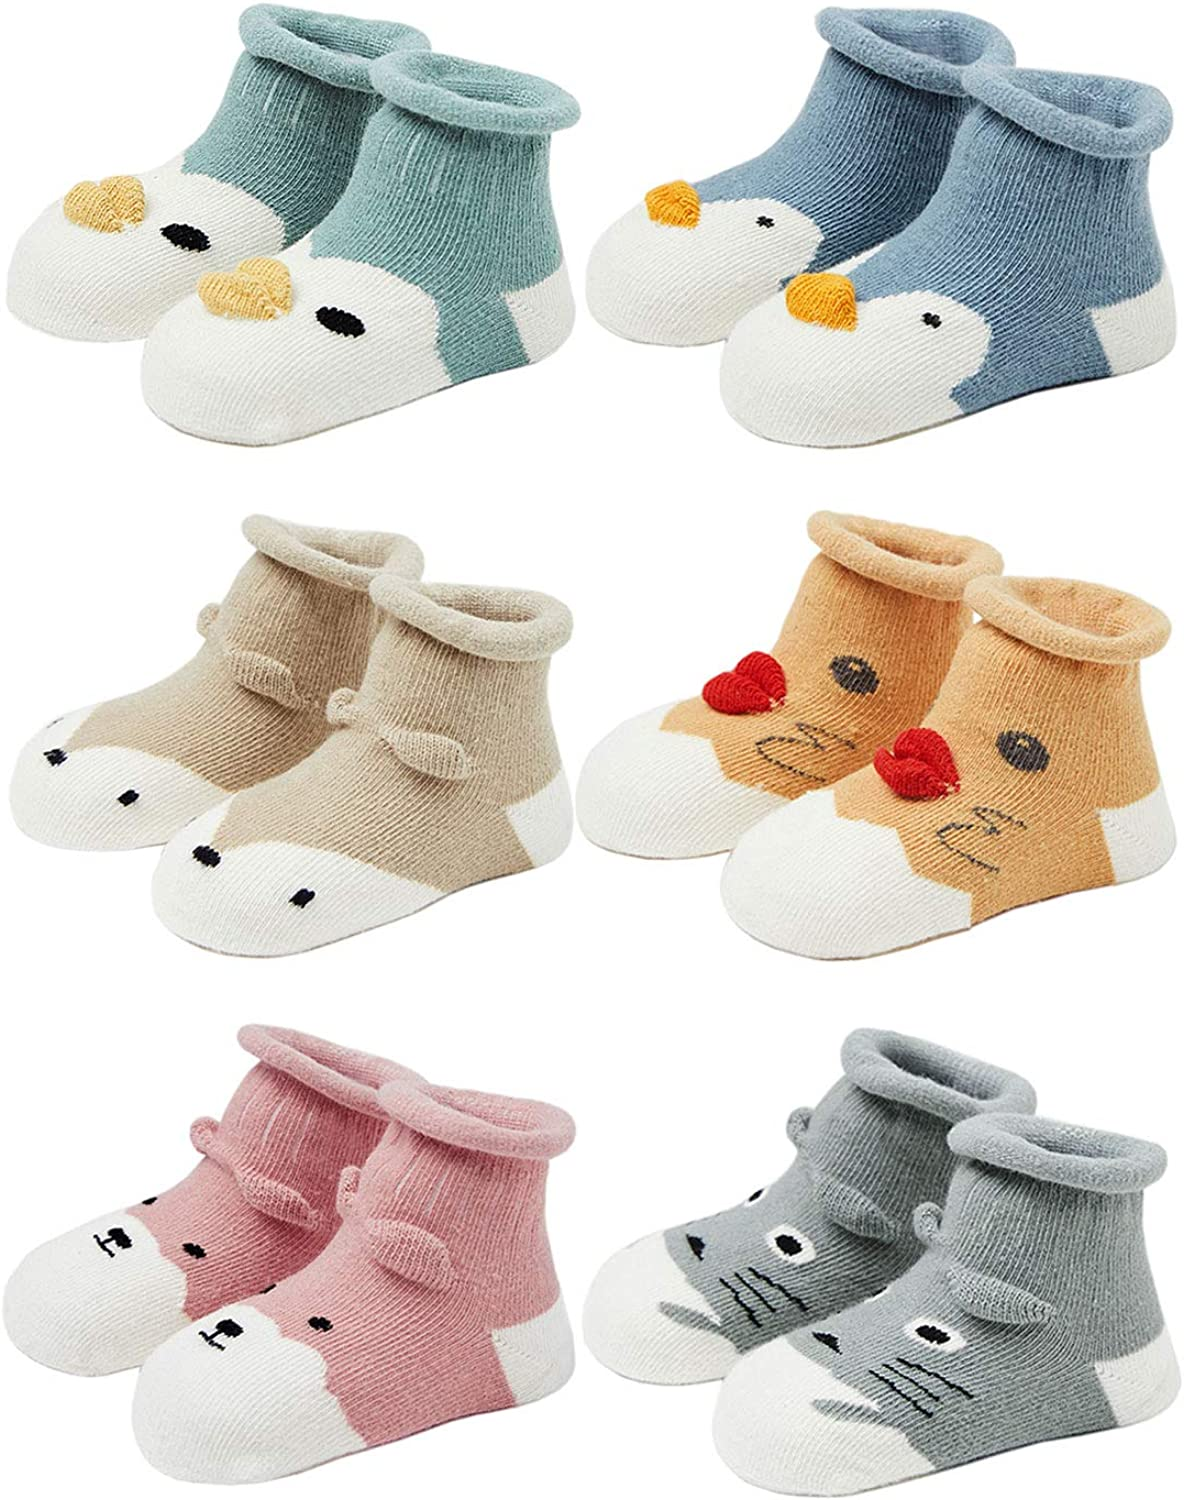 Woolen Thick Baby Kids Socks Soft Excellent Socks For Children Novelty  Years